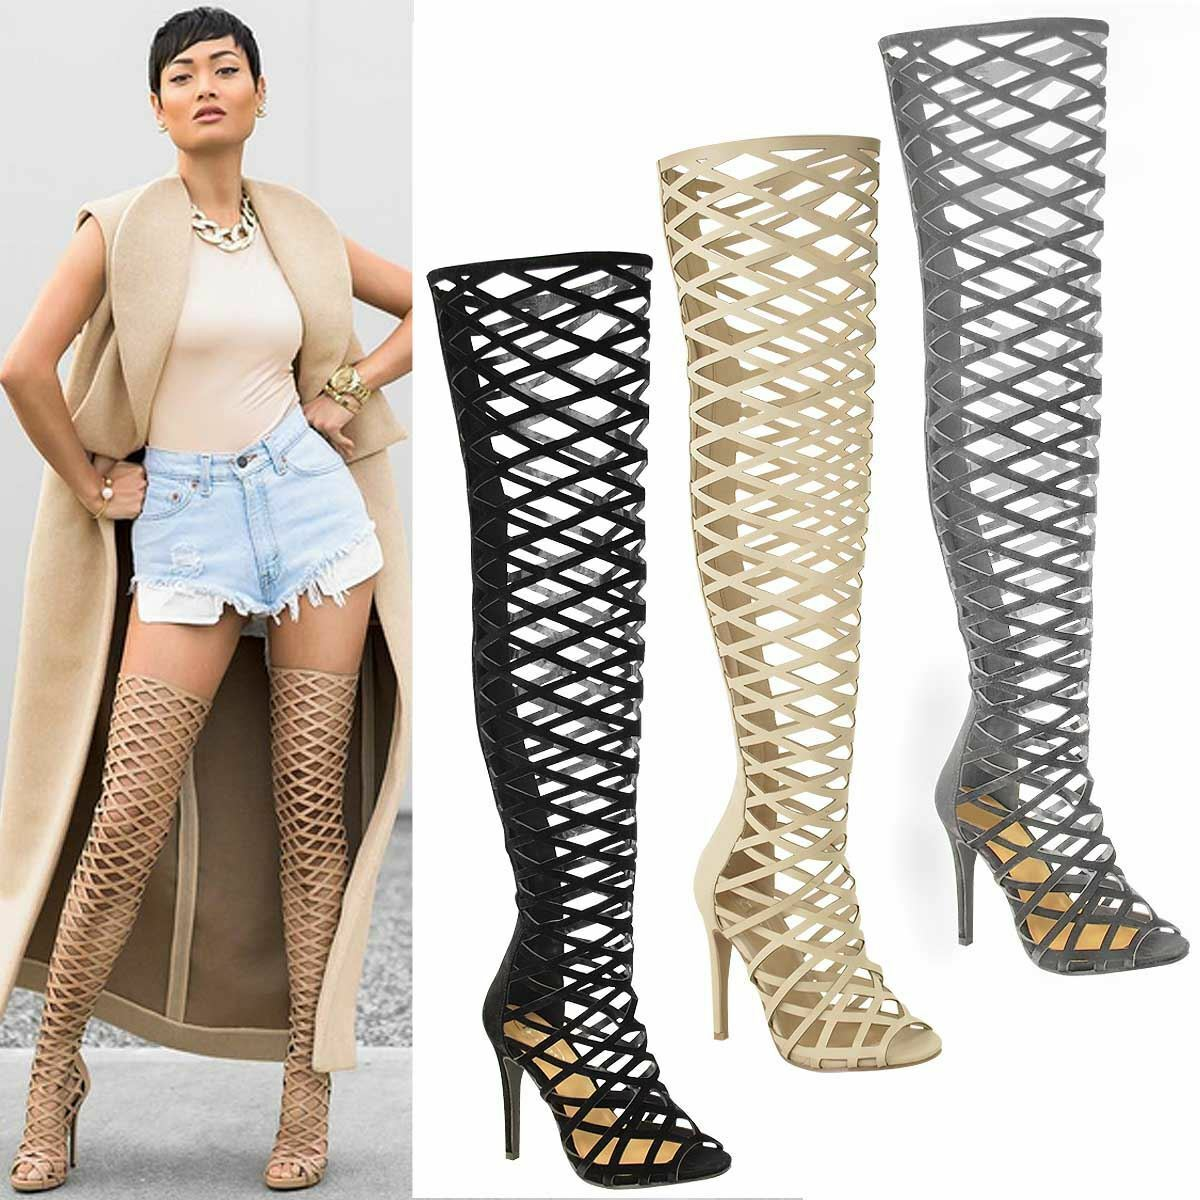 LADIES mujer CUT OUT OVER THE KNEE THIGH HIGH STILETTO HEELS botas SANDALS Talla